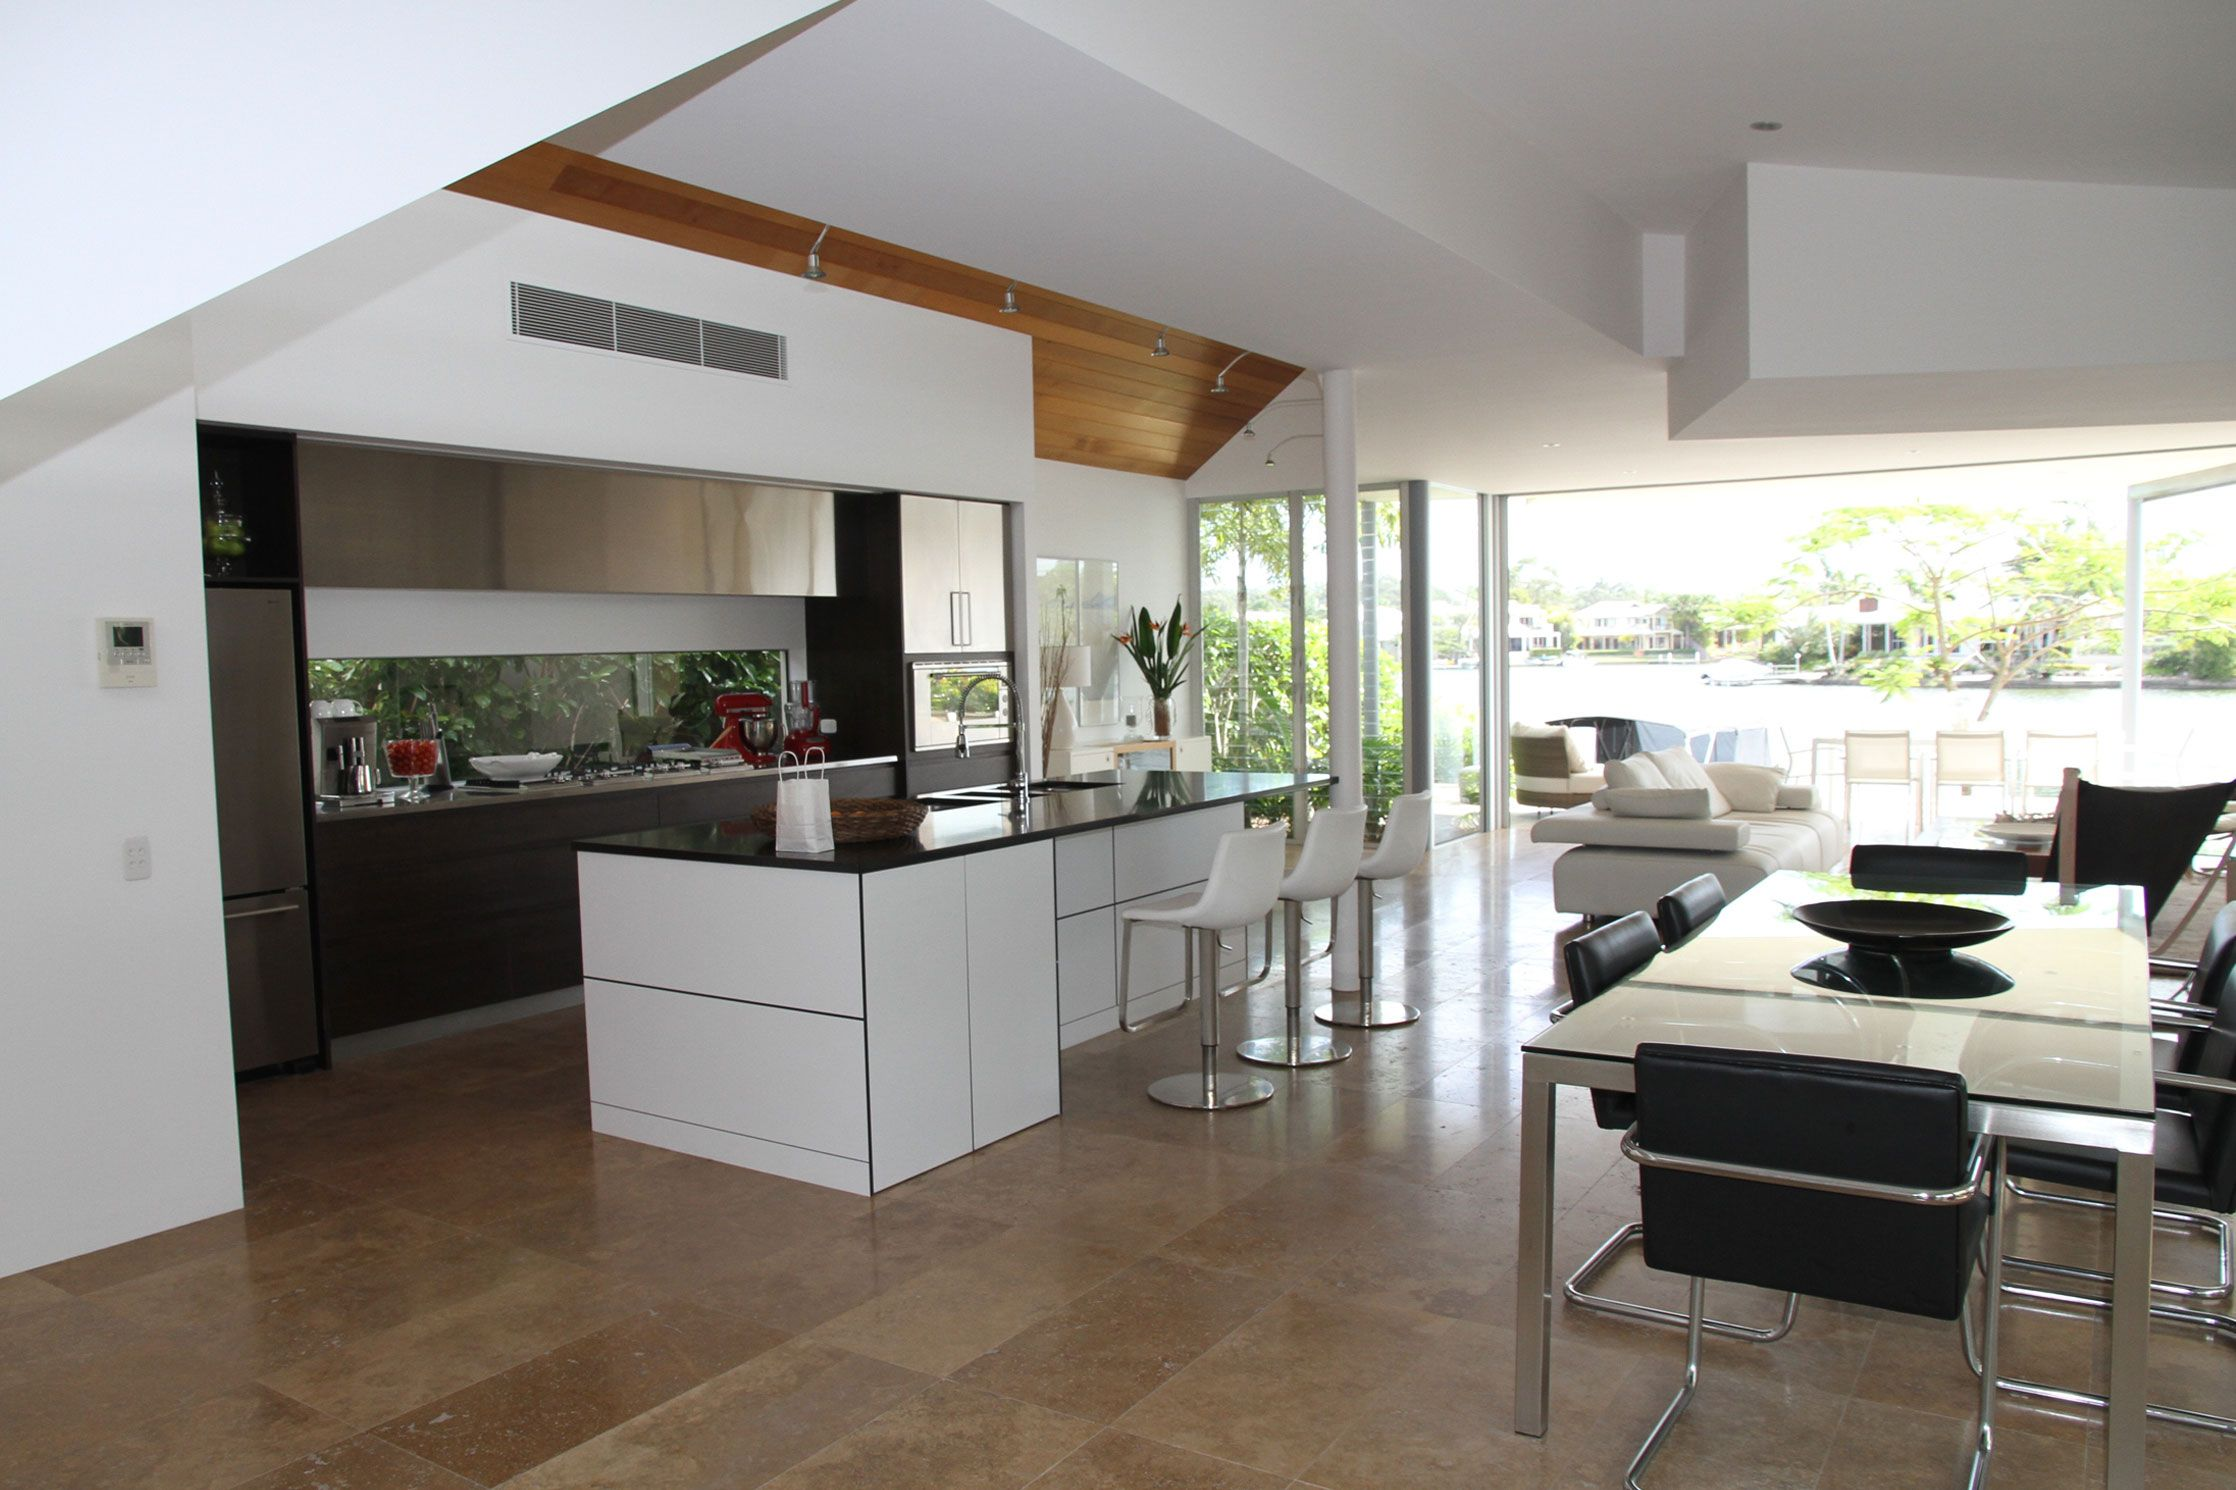 work-modernkitchen-featured